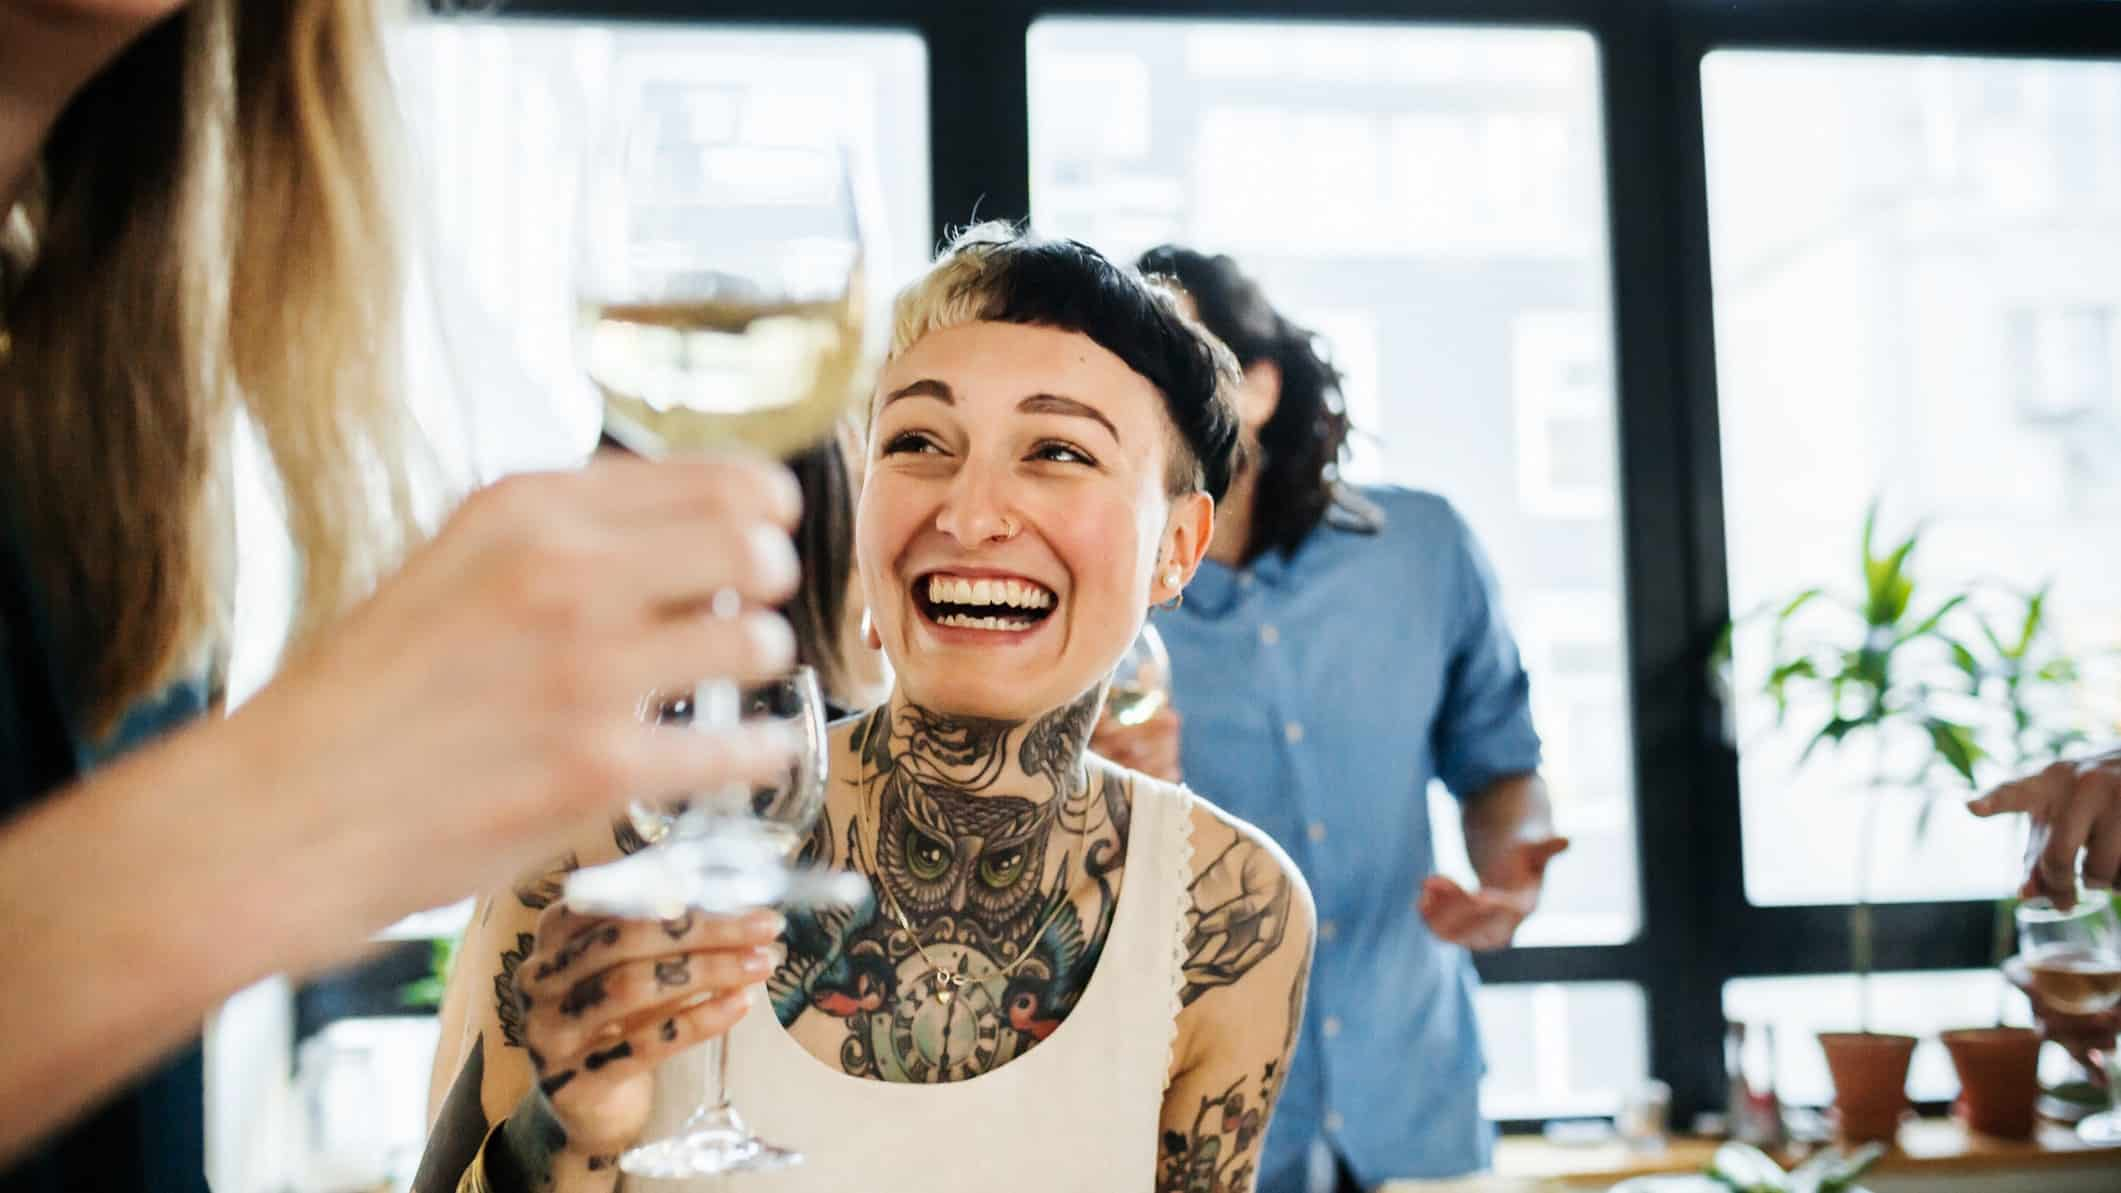 Smiling person with tattoos enjoying a glass of wine with a group of others.